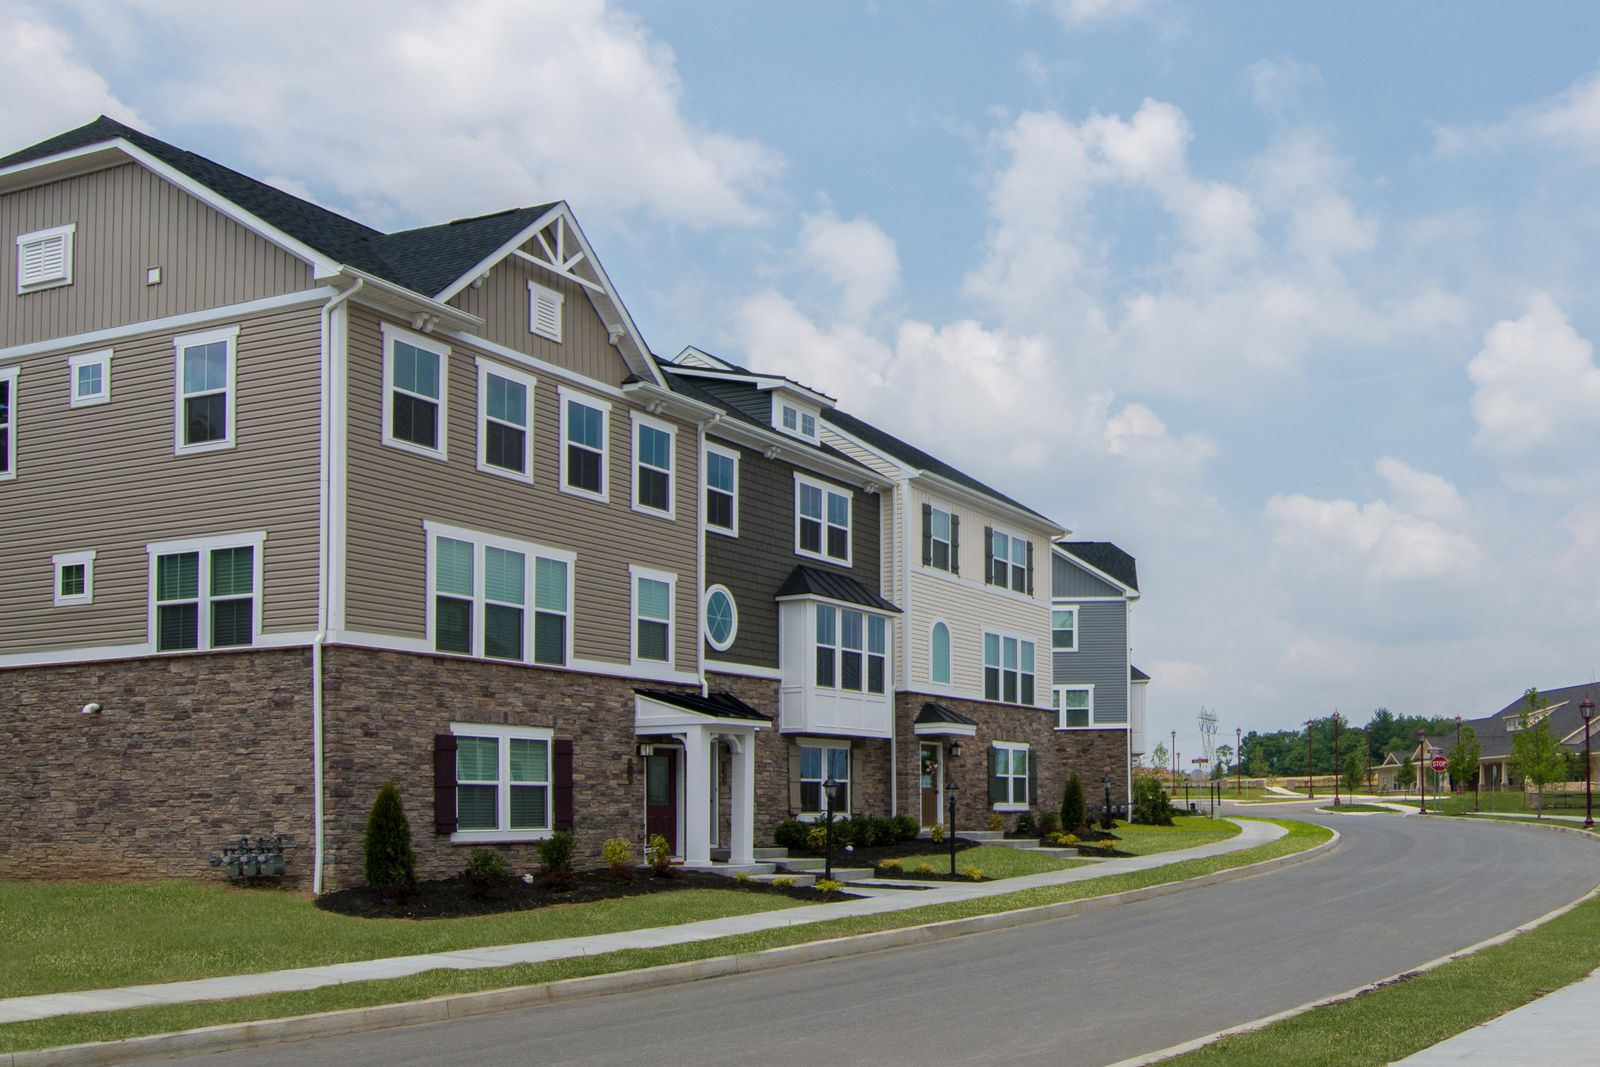 Park Place Townhomes:The only new townhomes in Cranberry with resort amenities—community center, pool, gardens, putting green, walking trails, and more.Click heretoschedule your visit.